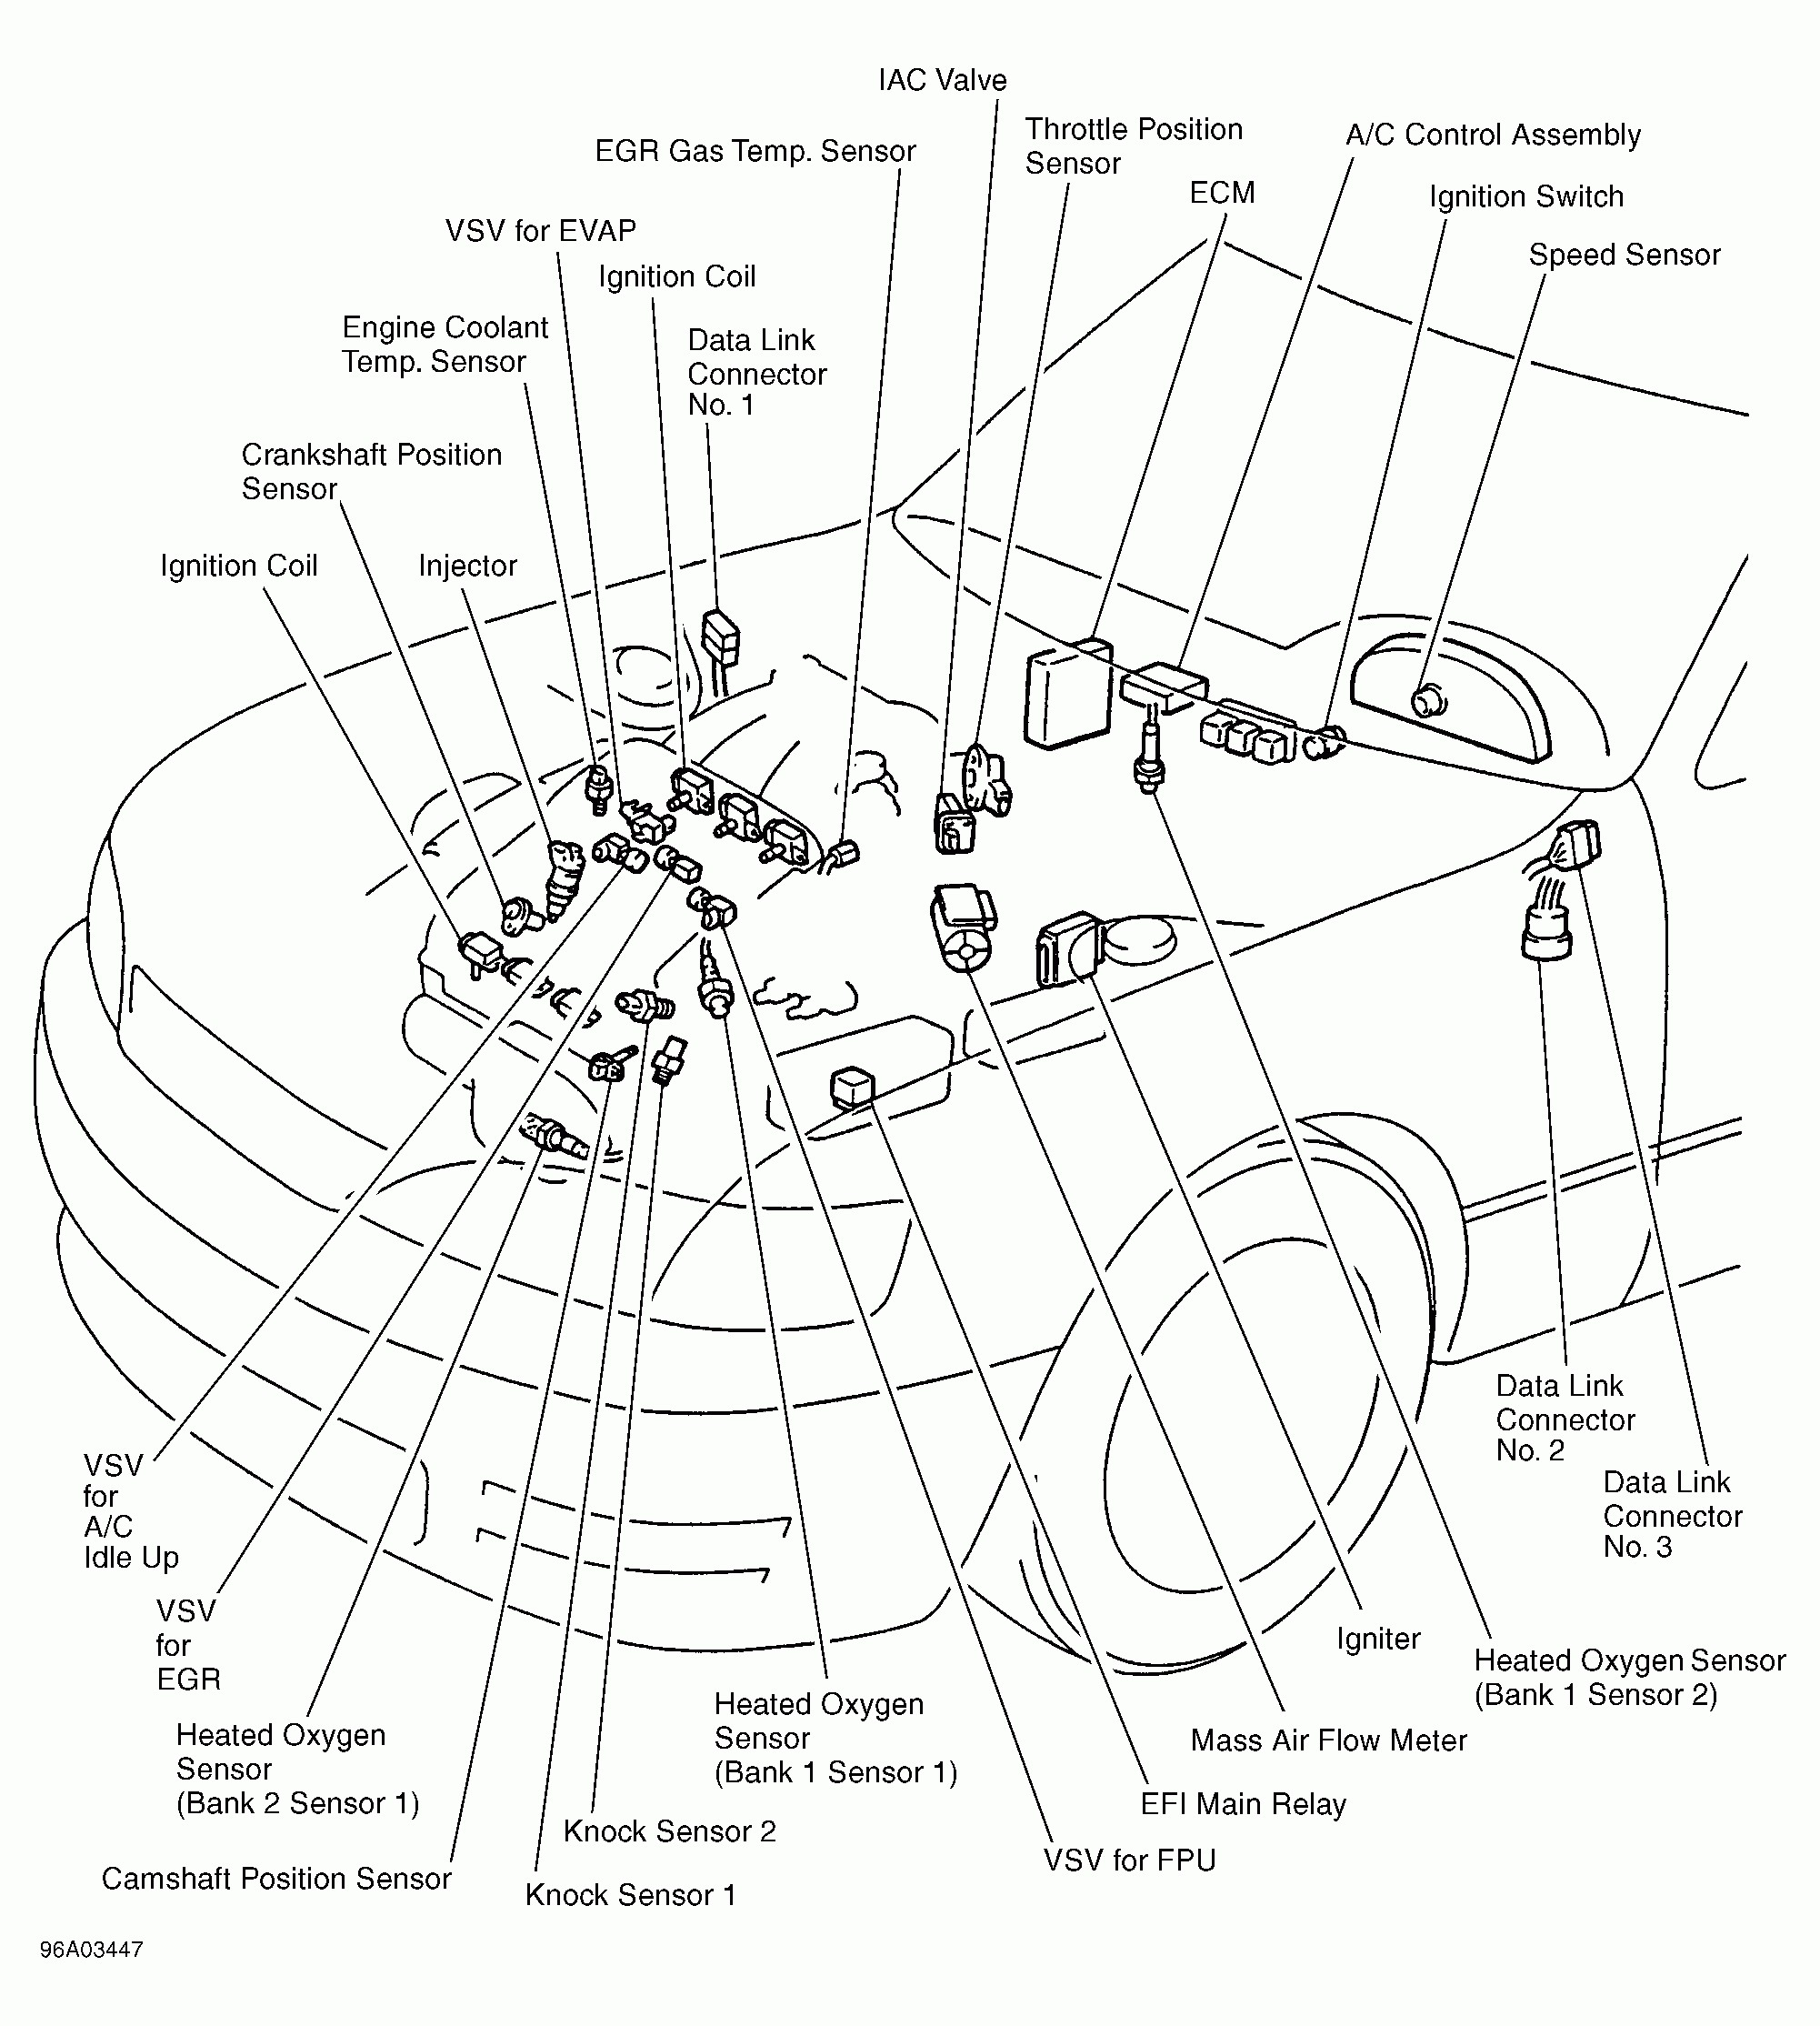 2006 Saturn Ion Engine Diagram Saturn 3 0 Engine Diagram Trusted Wiring Diagrams • Of 2006 Saturn Ion Engine Diagram How to Wire An Electric Oven Diagram 2018 Wiring Diagram Electric